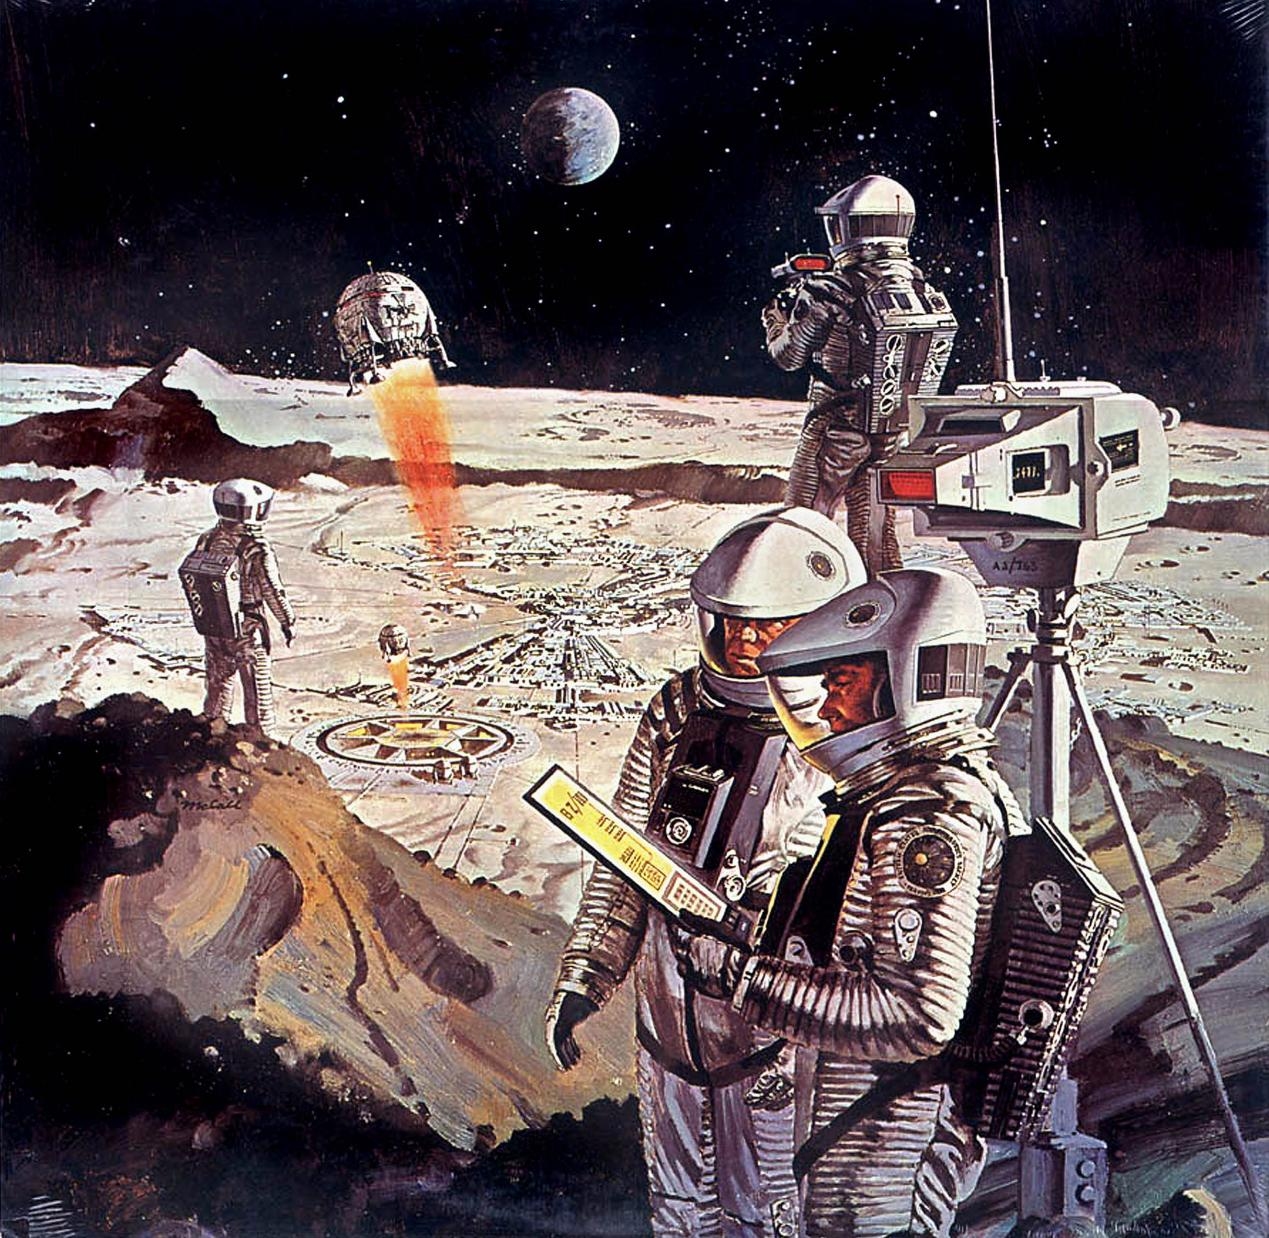 2001 A Space Odyssey Kubrick S Pioneering Achievement As One Of